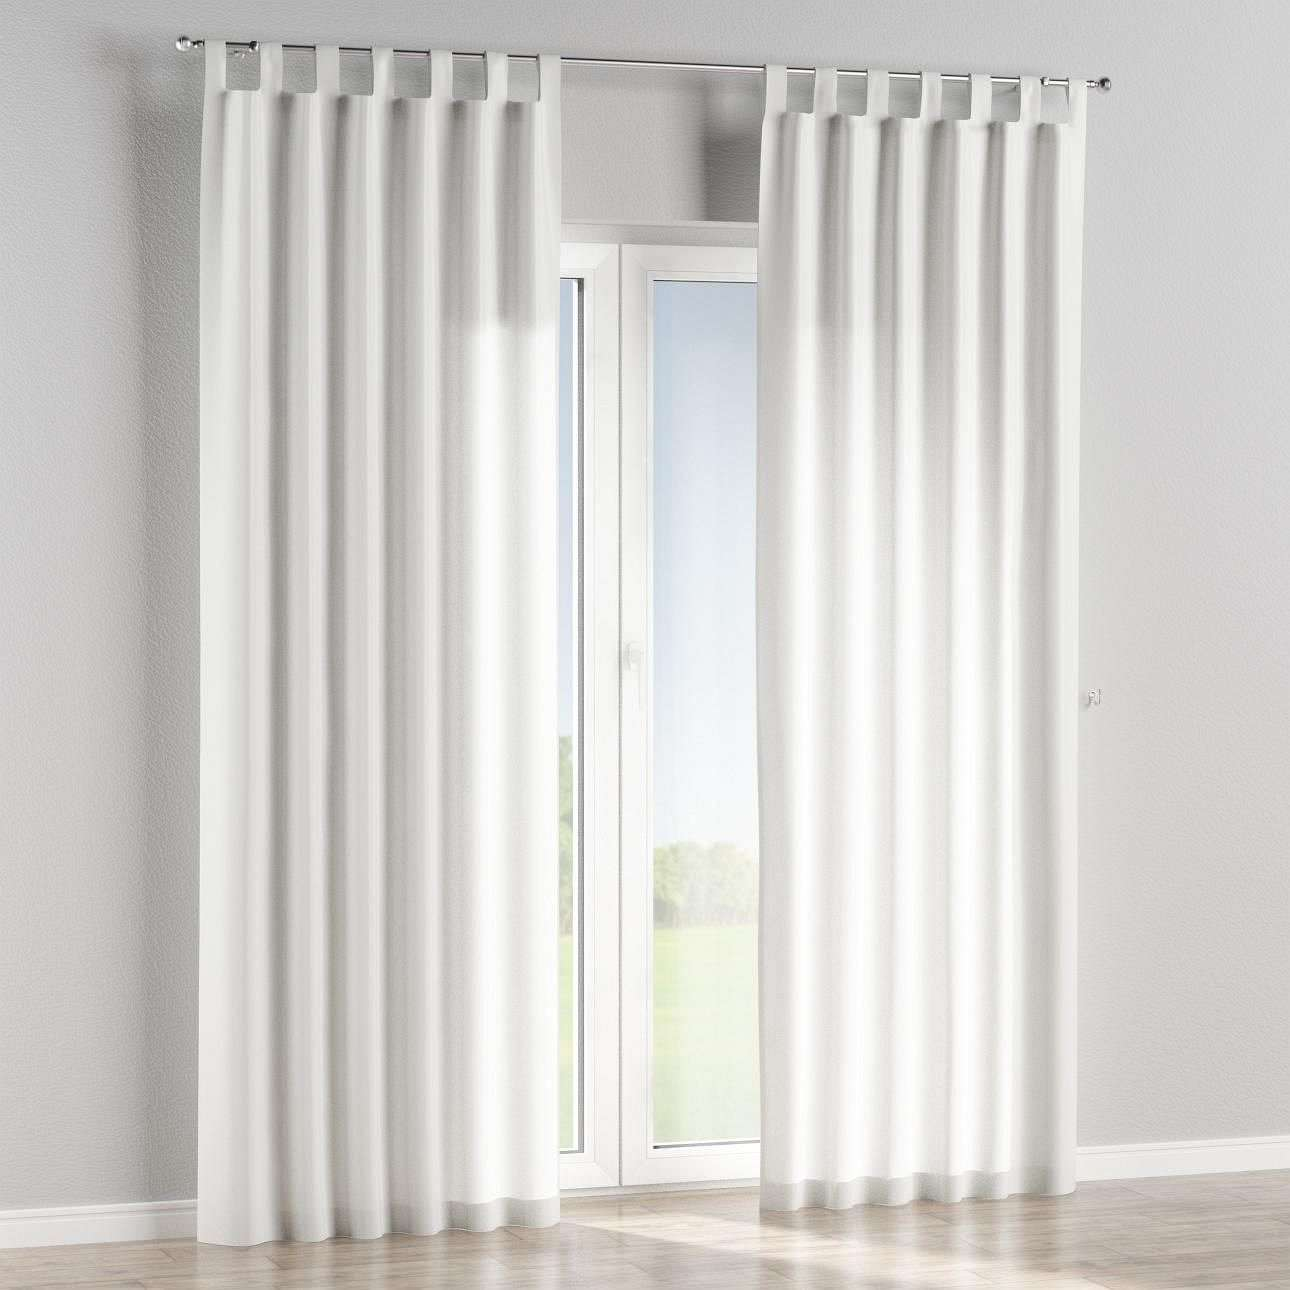 Tab top curtains in collection Rustica, fabric: 140-32